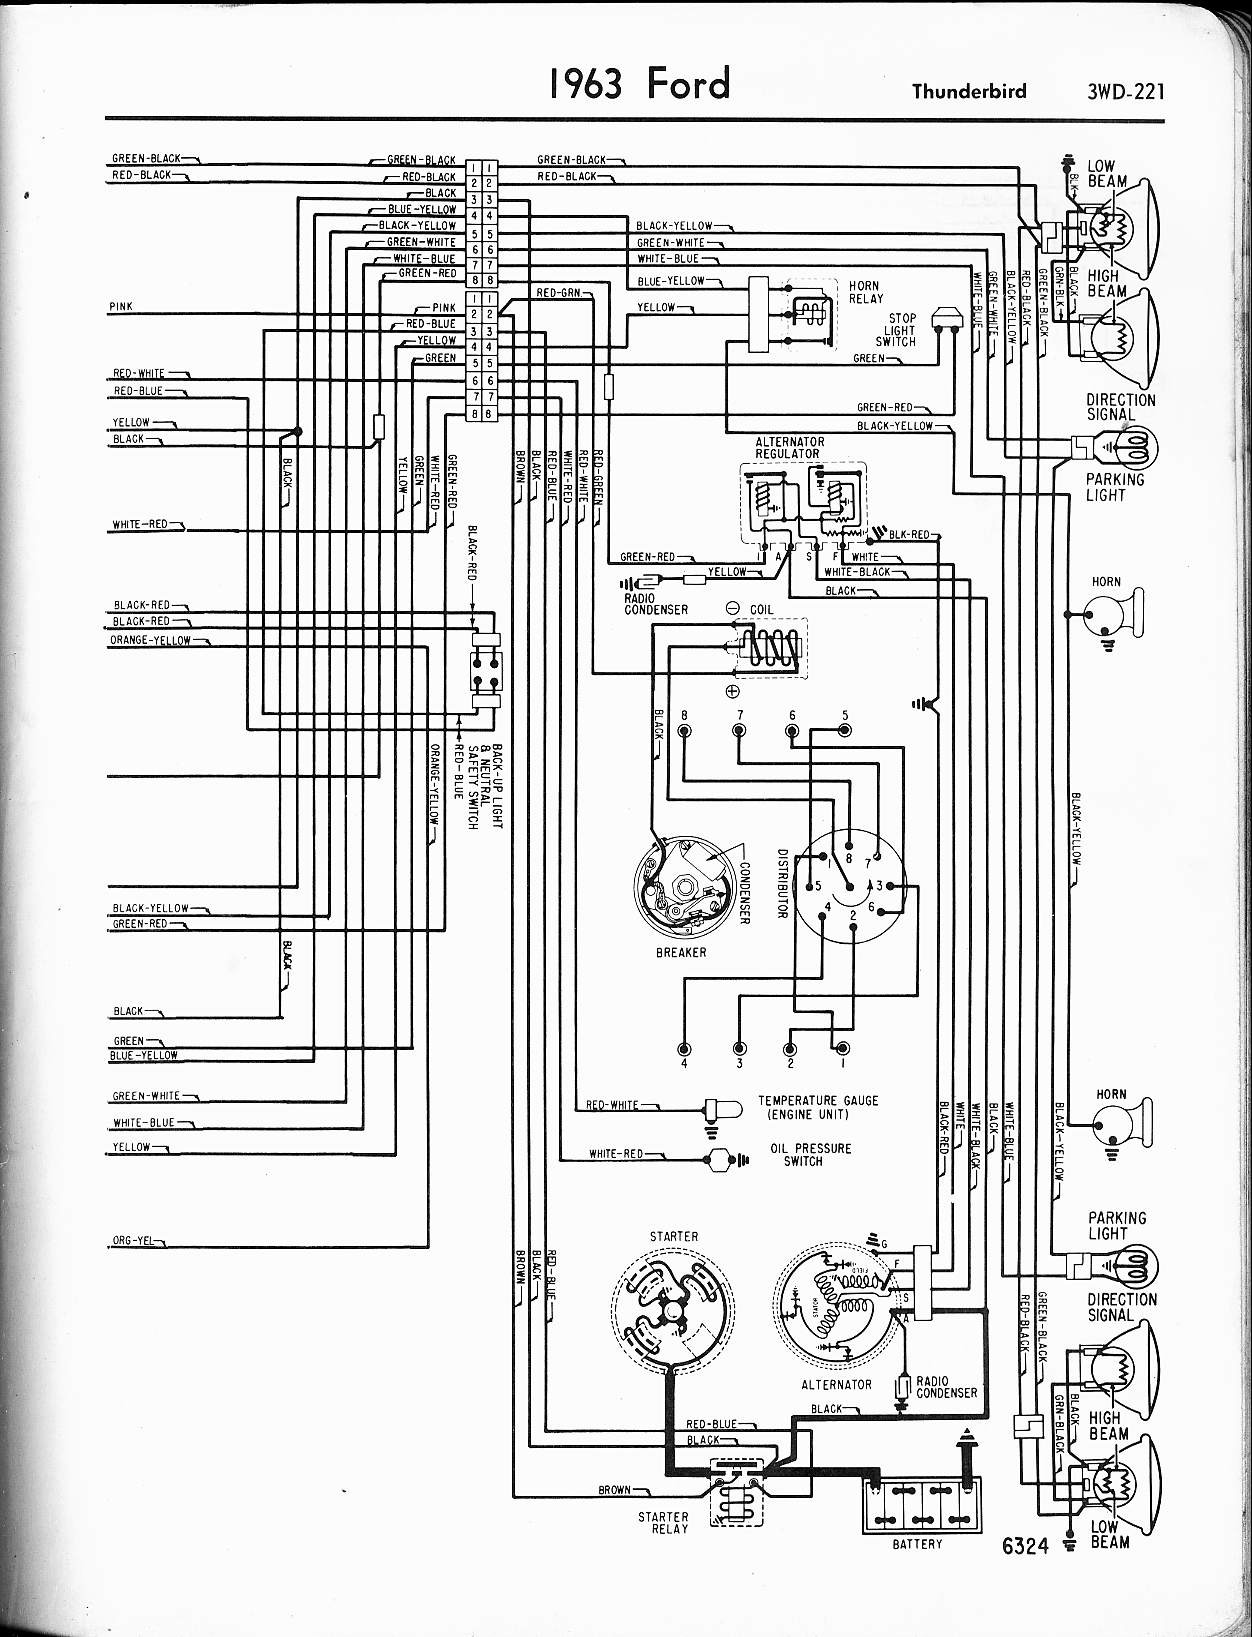 [WQZT_9871]  1966 Falcon Wiring Diagram 3 Way Light Circuit Wiring Diagram A -  deville.jambu.astrea-construction.fr | 1966 Ford Falcon Wiring |  | ASTREA CONSTRUCTION